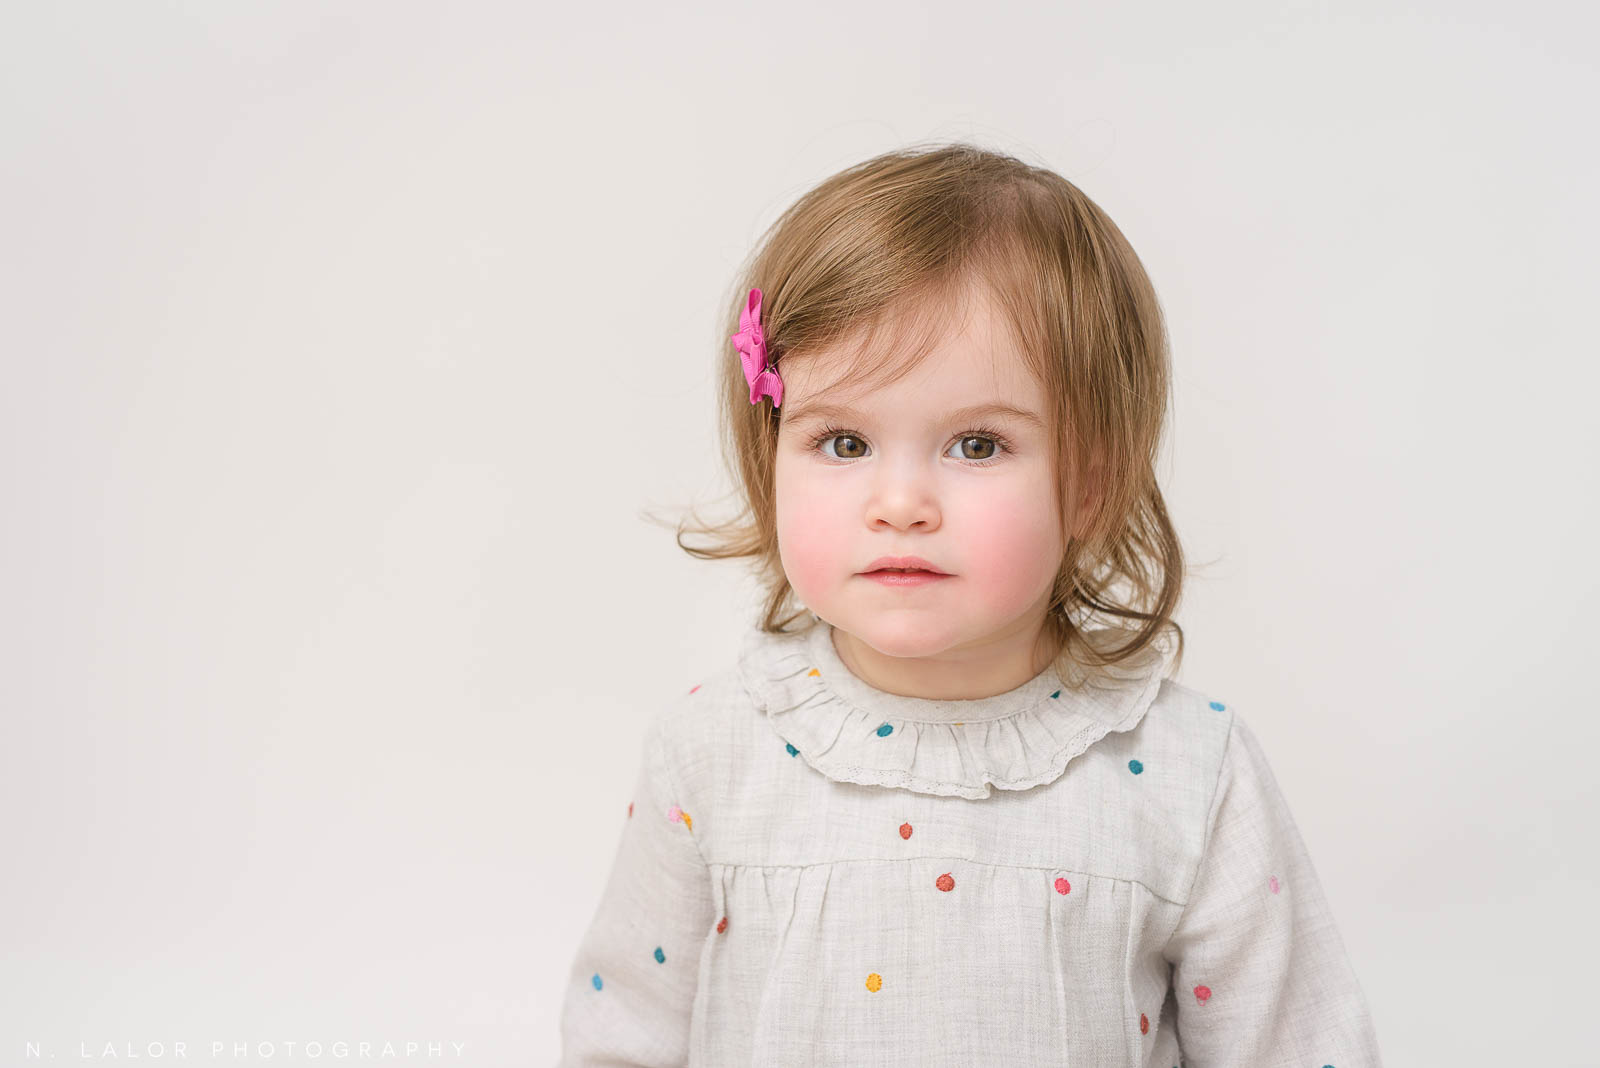 Even children need a bit of retouching! In this image, the under eye area was lightened and skin was retouched to create a non-distracting portrait of how her Mom sees her every day.